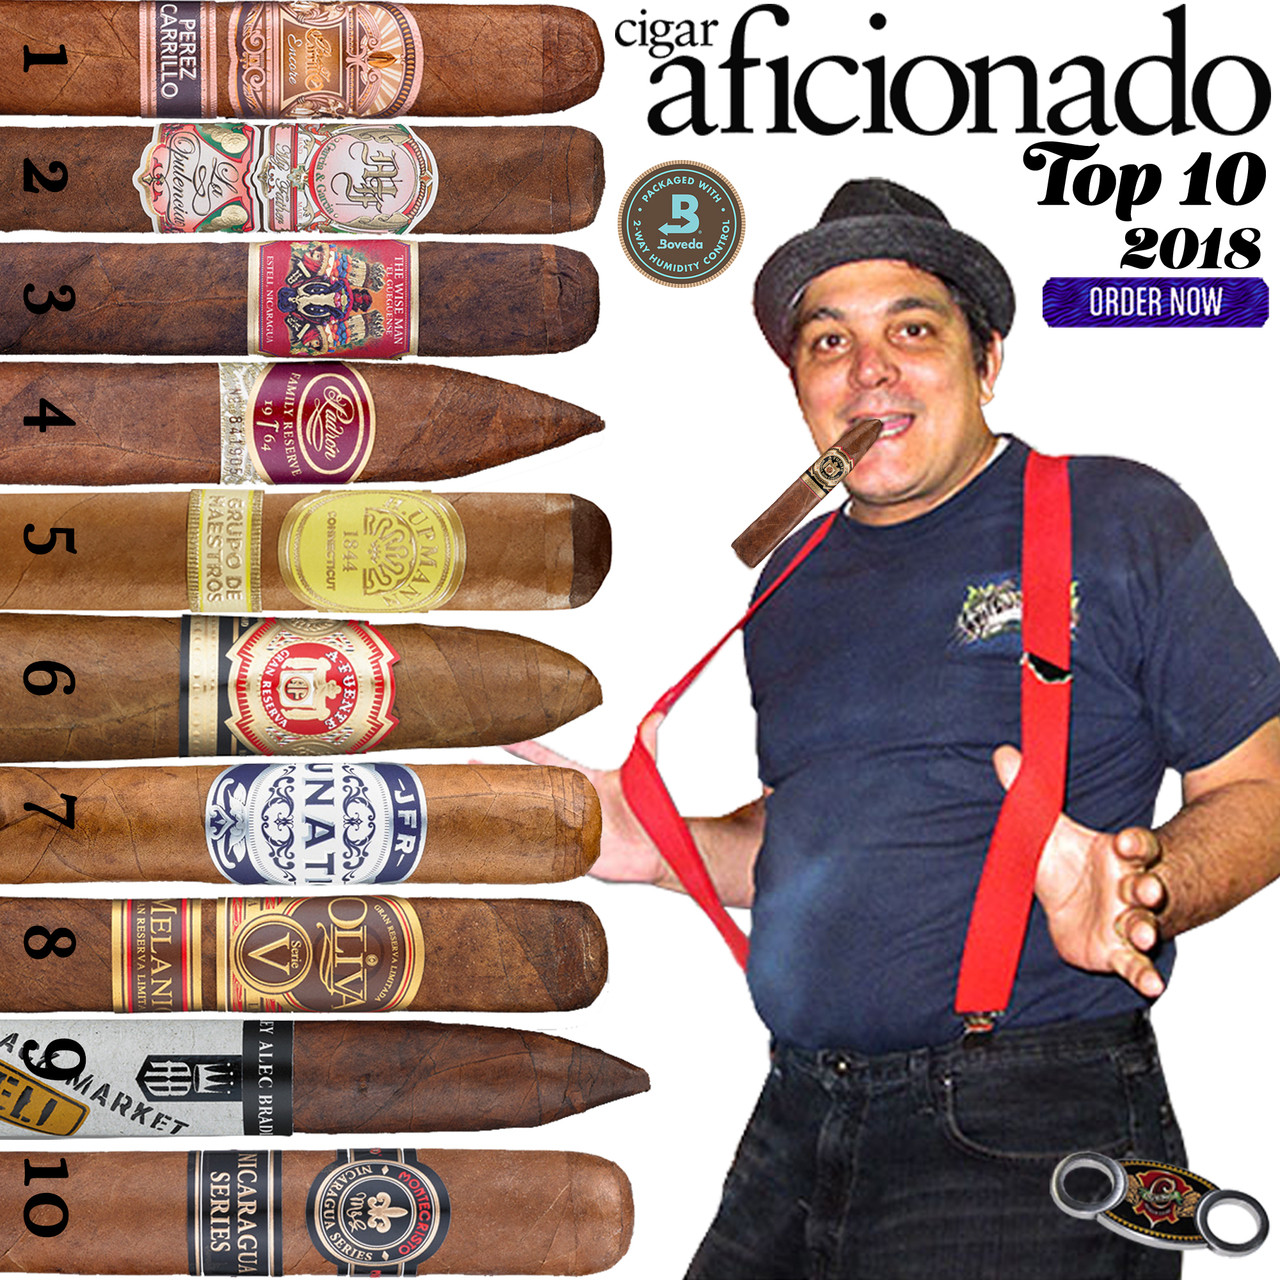 2018 Top 10 Cigars by Cigar Aficionado